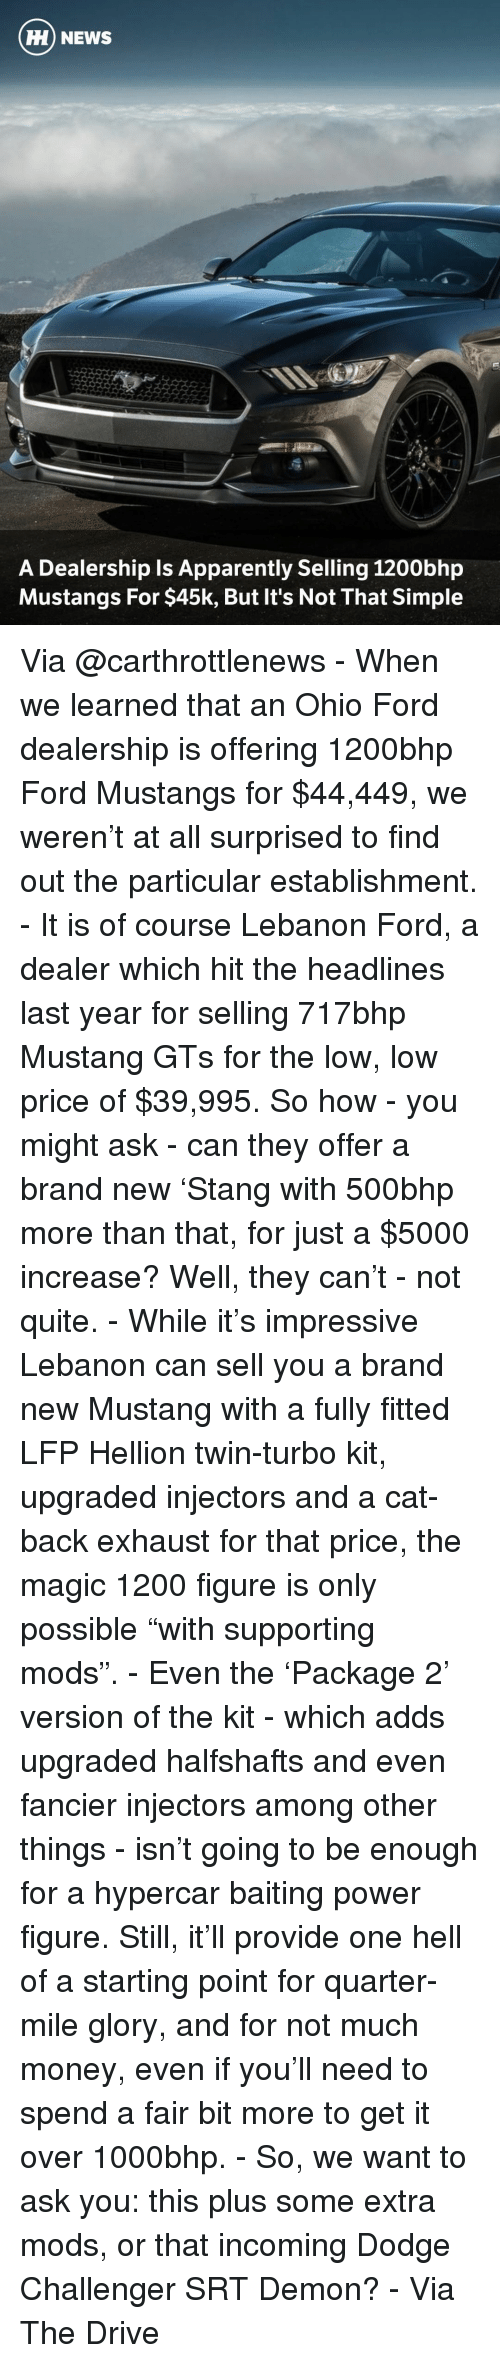 "a-starting-point: HH NEWS  A Dealership Is Apparently Selling 1200bhp  Mustangs For $45k, But It's Not That Simple Via @carthrottlenews - When we learned that an Ohio Ford dealership is offering 1200bhp Ford Mustangs for $44,449, we weren't at all surprised to find out the particular establishment. - It is of course Lebanon Ford, a dealer which hit the headlines last year for selling 717bhp Mustang GTs for the low, low price of $39,995. So how - you might ask - can they offer a brand new 'Stang with 500bhp more than that, for just a $5000 increase? Well, they can't - not quite. - While it's impressive Lebanon can sell you a brand new Mustang with a fully fitted LFP Hellion twin-turbo kit, upgraded injectors and a cat-back exhaust for that price, the magic 1200 figure is only possible ""with supporting mods"". - Even the 'Package 2' version of the kit - which adds upgraded halfshafts and even fancier injectors among other things - isn't going to be enough for a hypercar baiting power figure. Still, it'll provide one hell of a starting point for quarter-mile glory, and for not much money, even if you'll need to spend a fair bit more to get it over 1000bhp. - So, we want to ask you: this plus some extra mods, or that incoming Dodge Challenger SRT Demon? - Via The Drive"